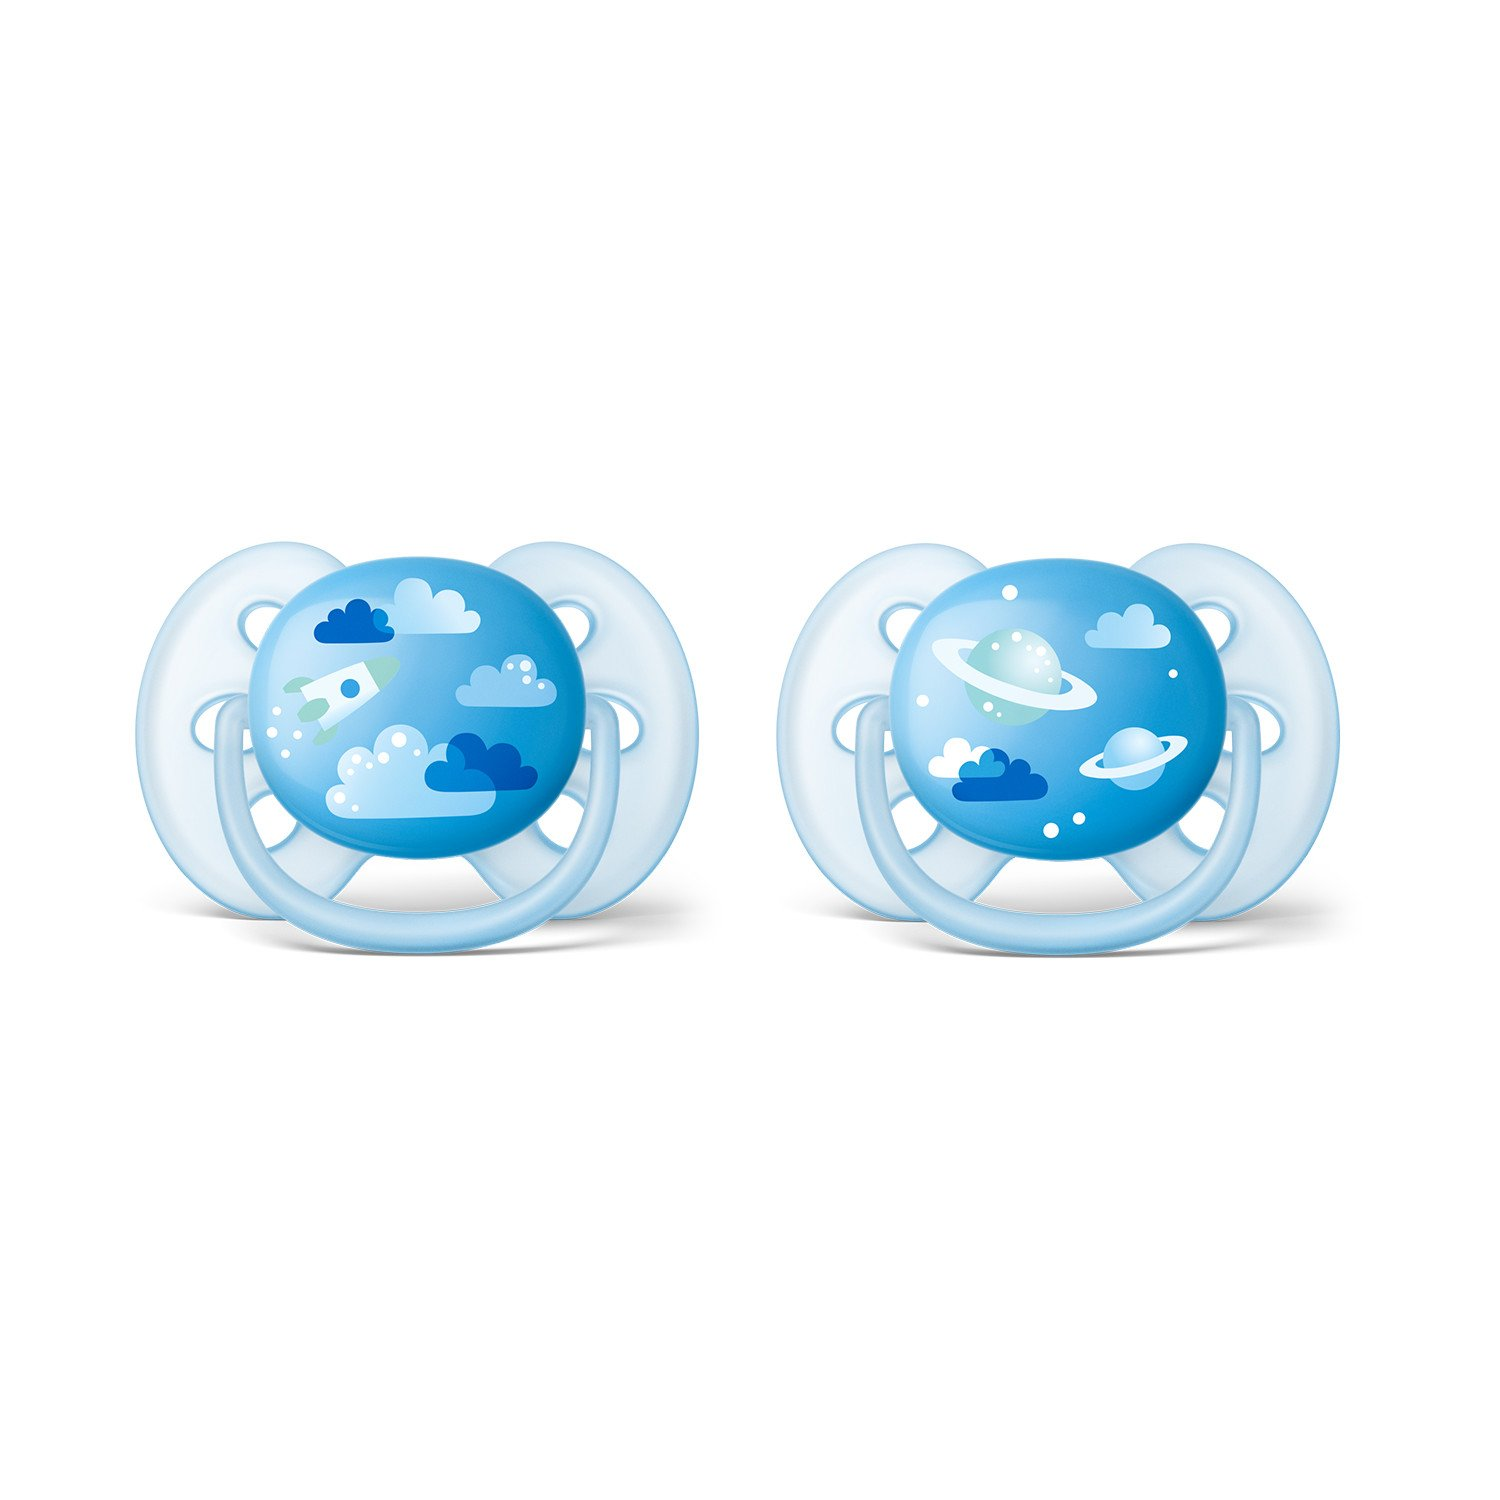 Philips Avent SCF222/22 - Pack de dos chupetes ultra suaves y flexibles, decorados, 6-18 meses, niño, color azul cielo